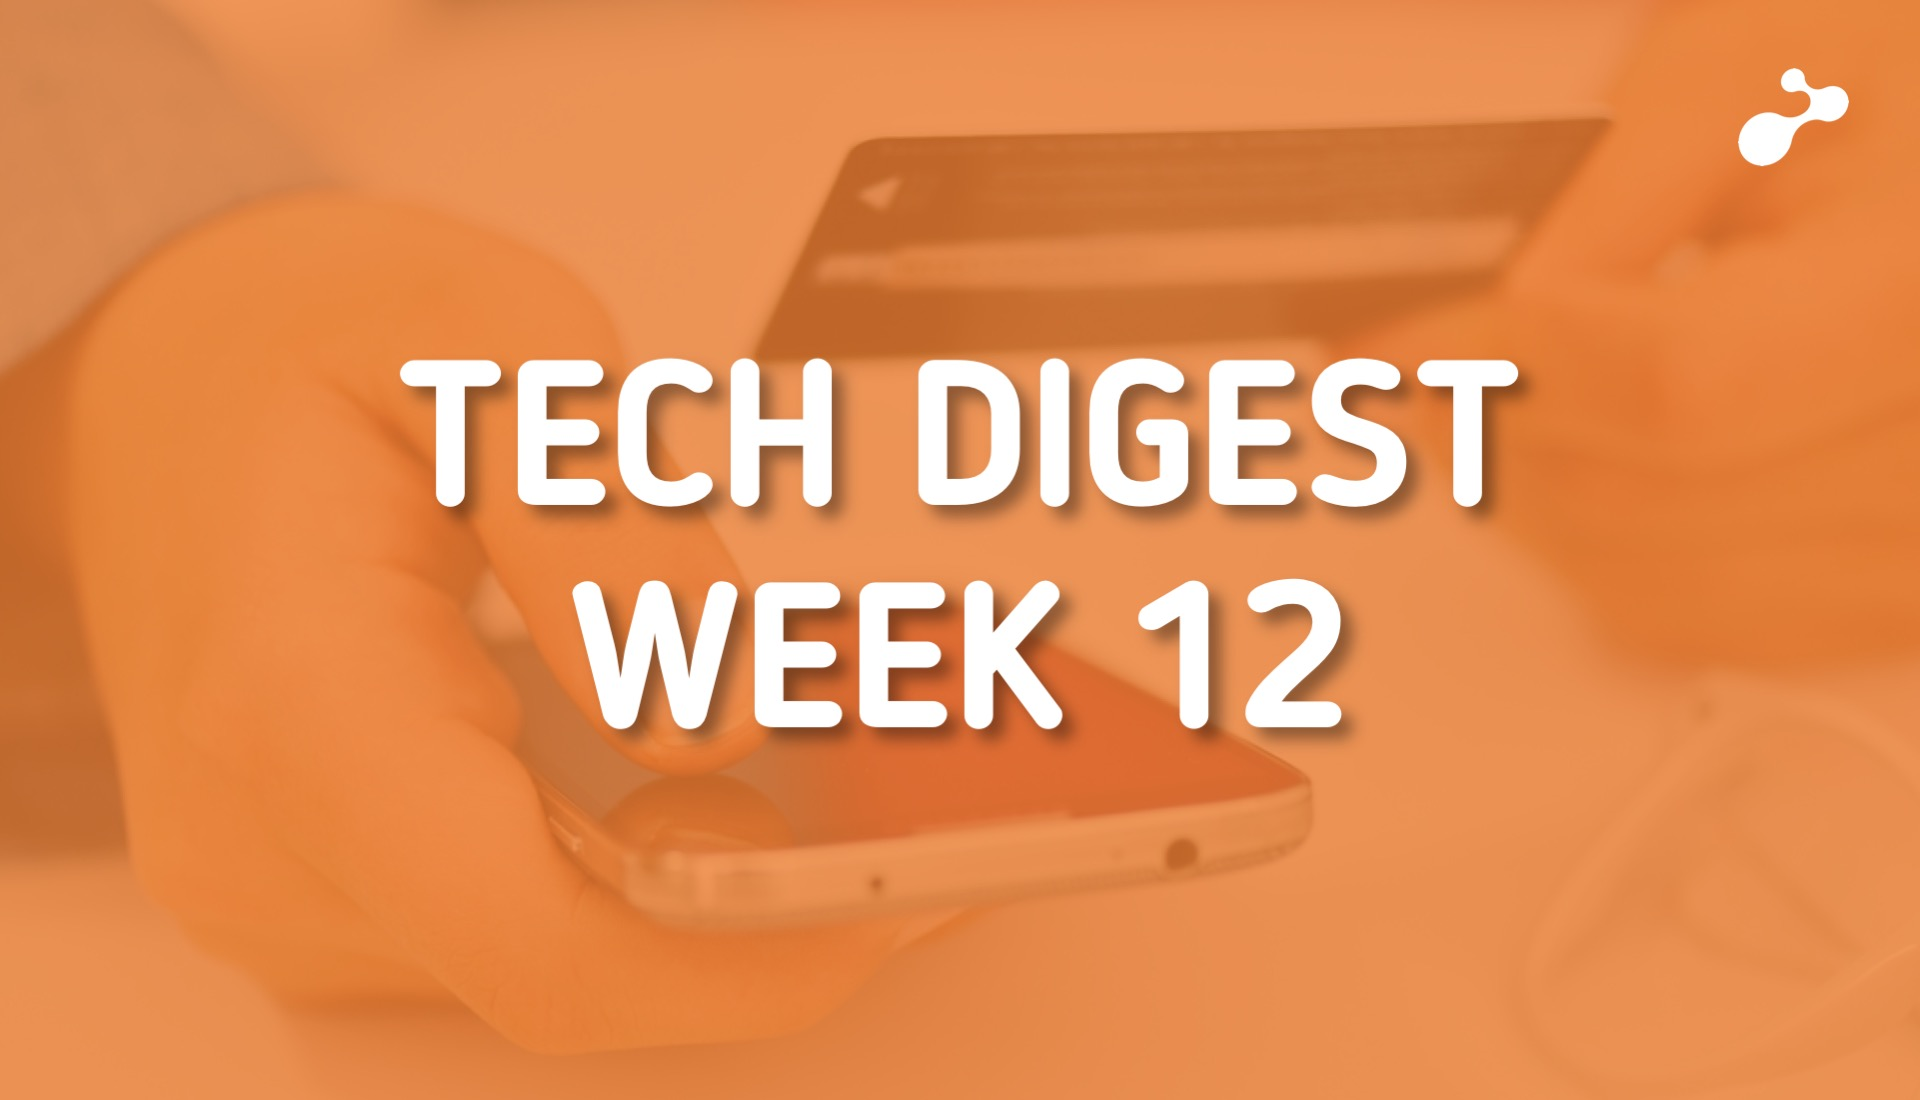 Tech news doing the rounds- Week 12, 2019